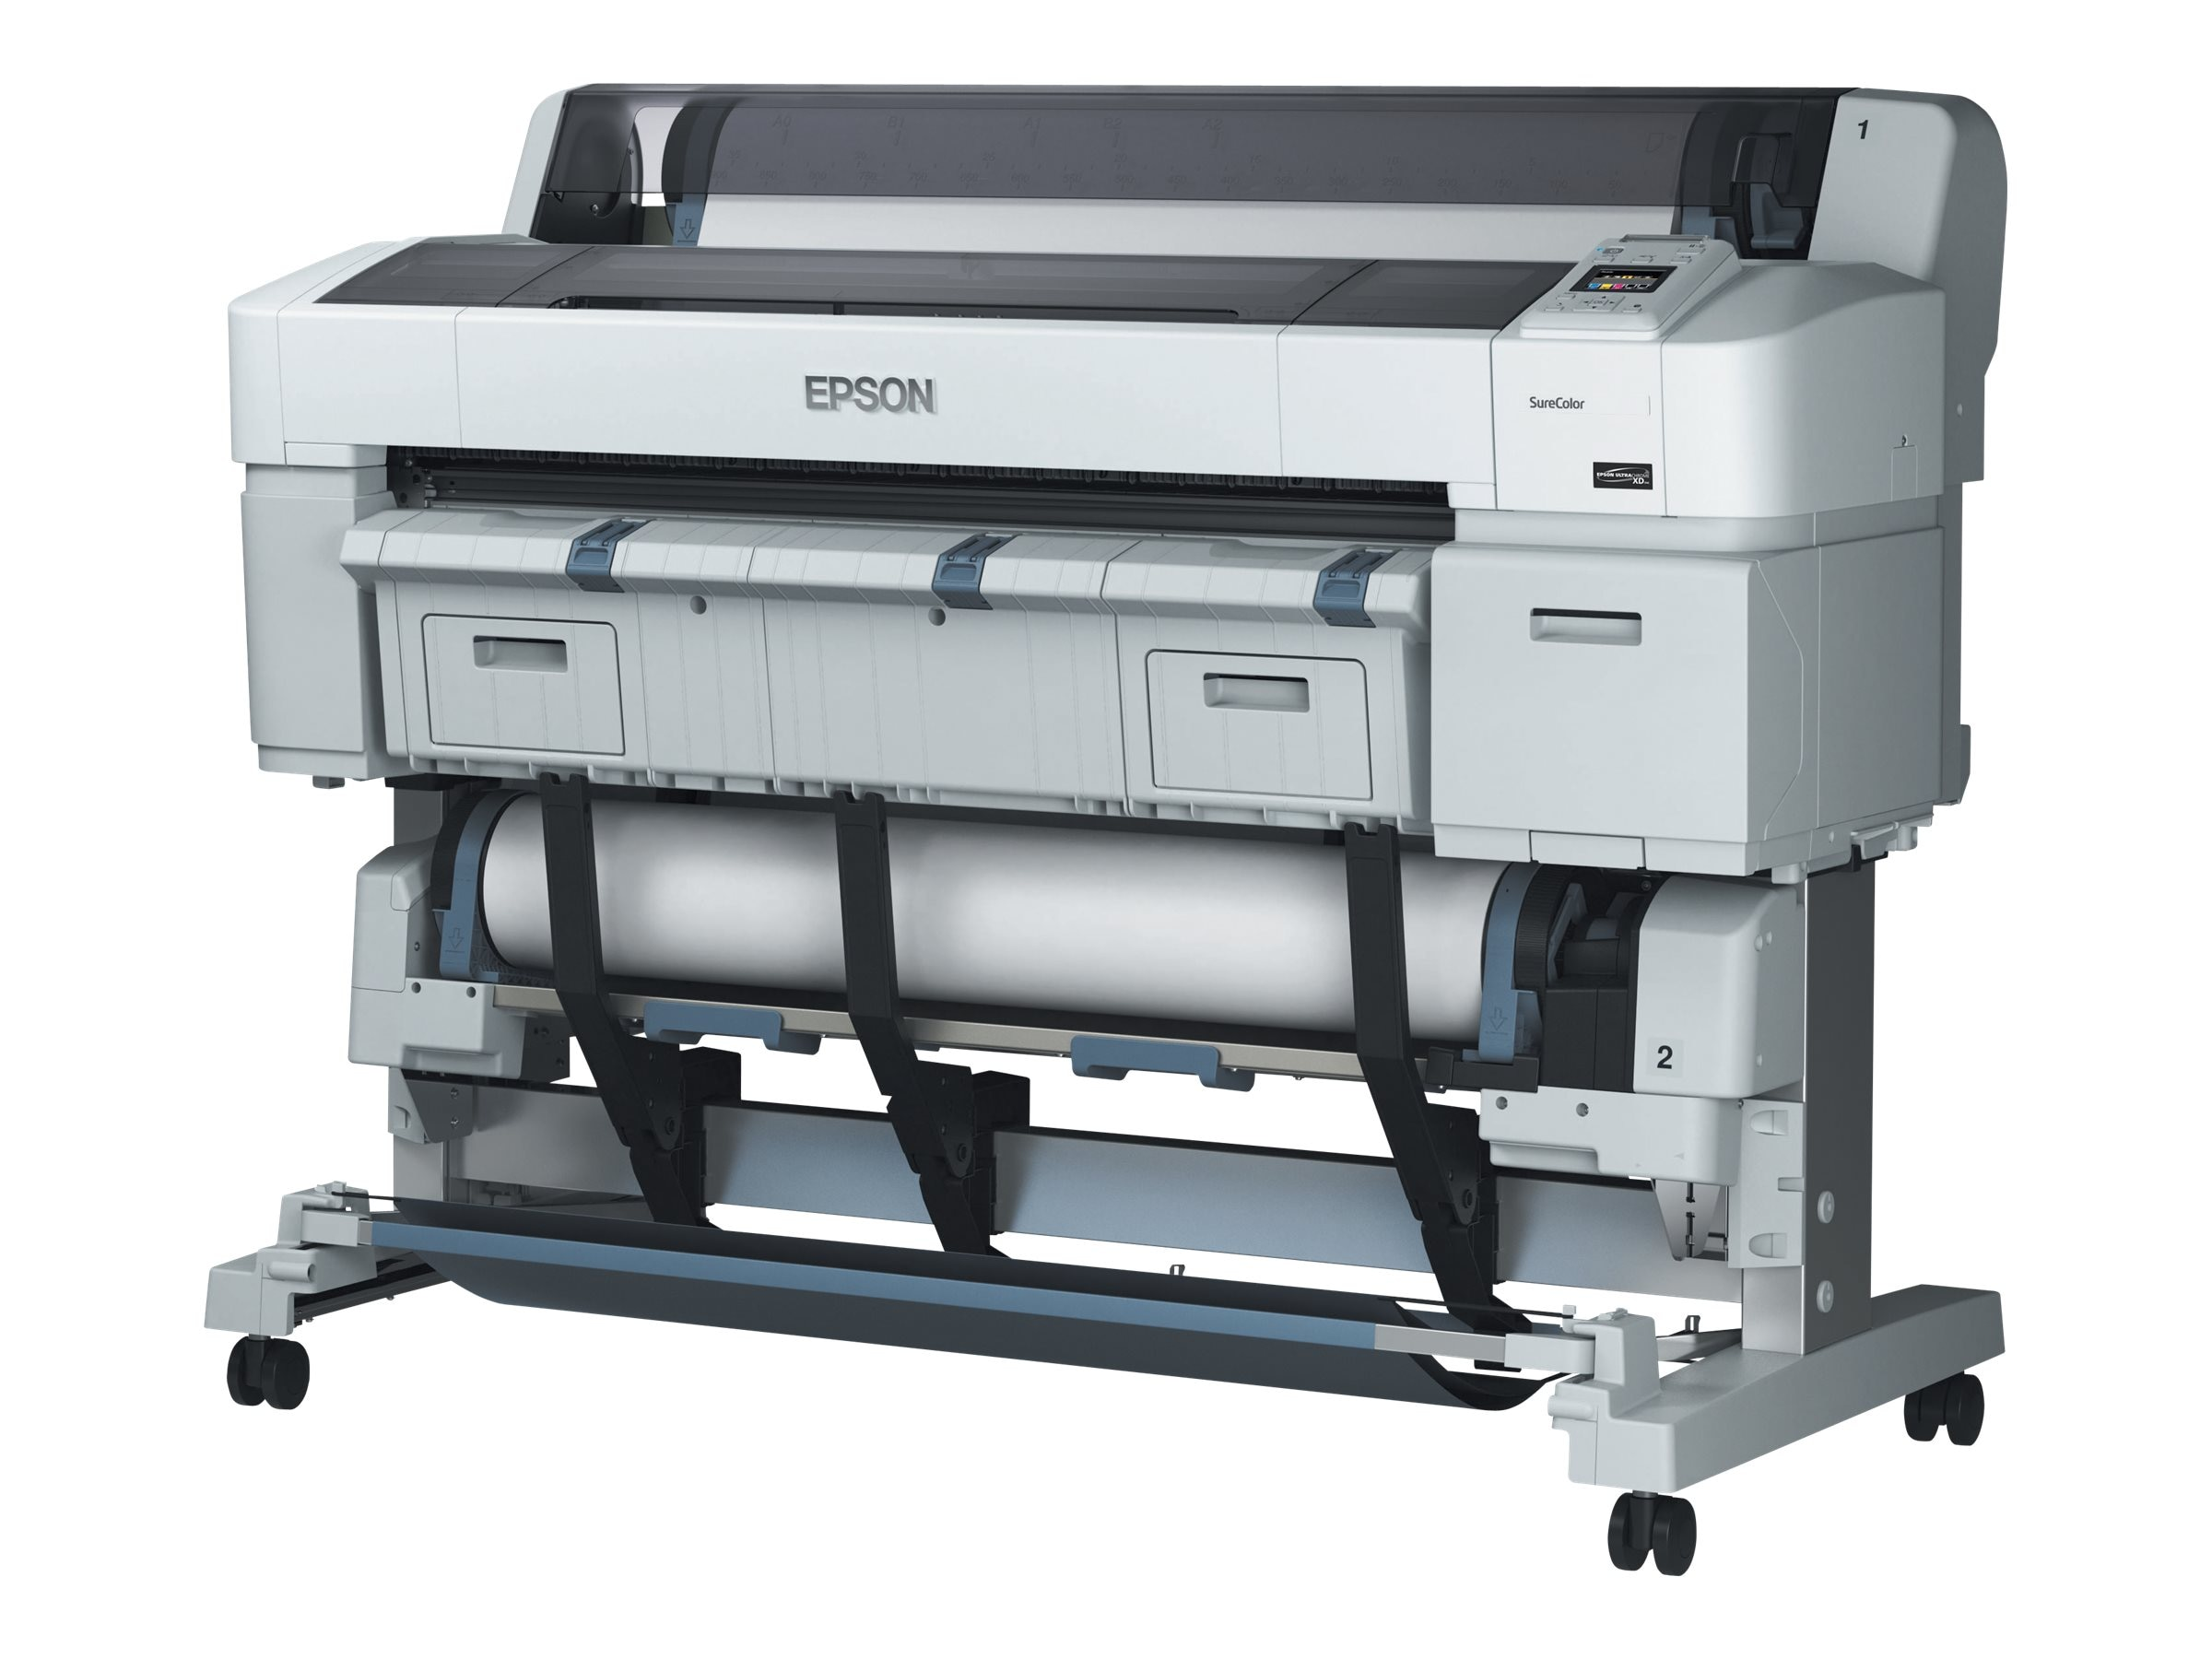 Epson SureColor T5270D Dual Roll Printer - $5995 less instant rebate of $750.00